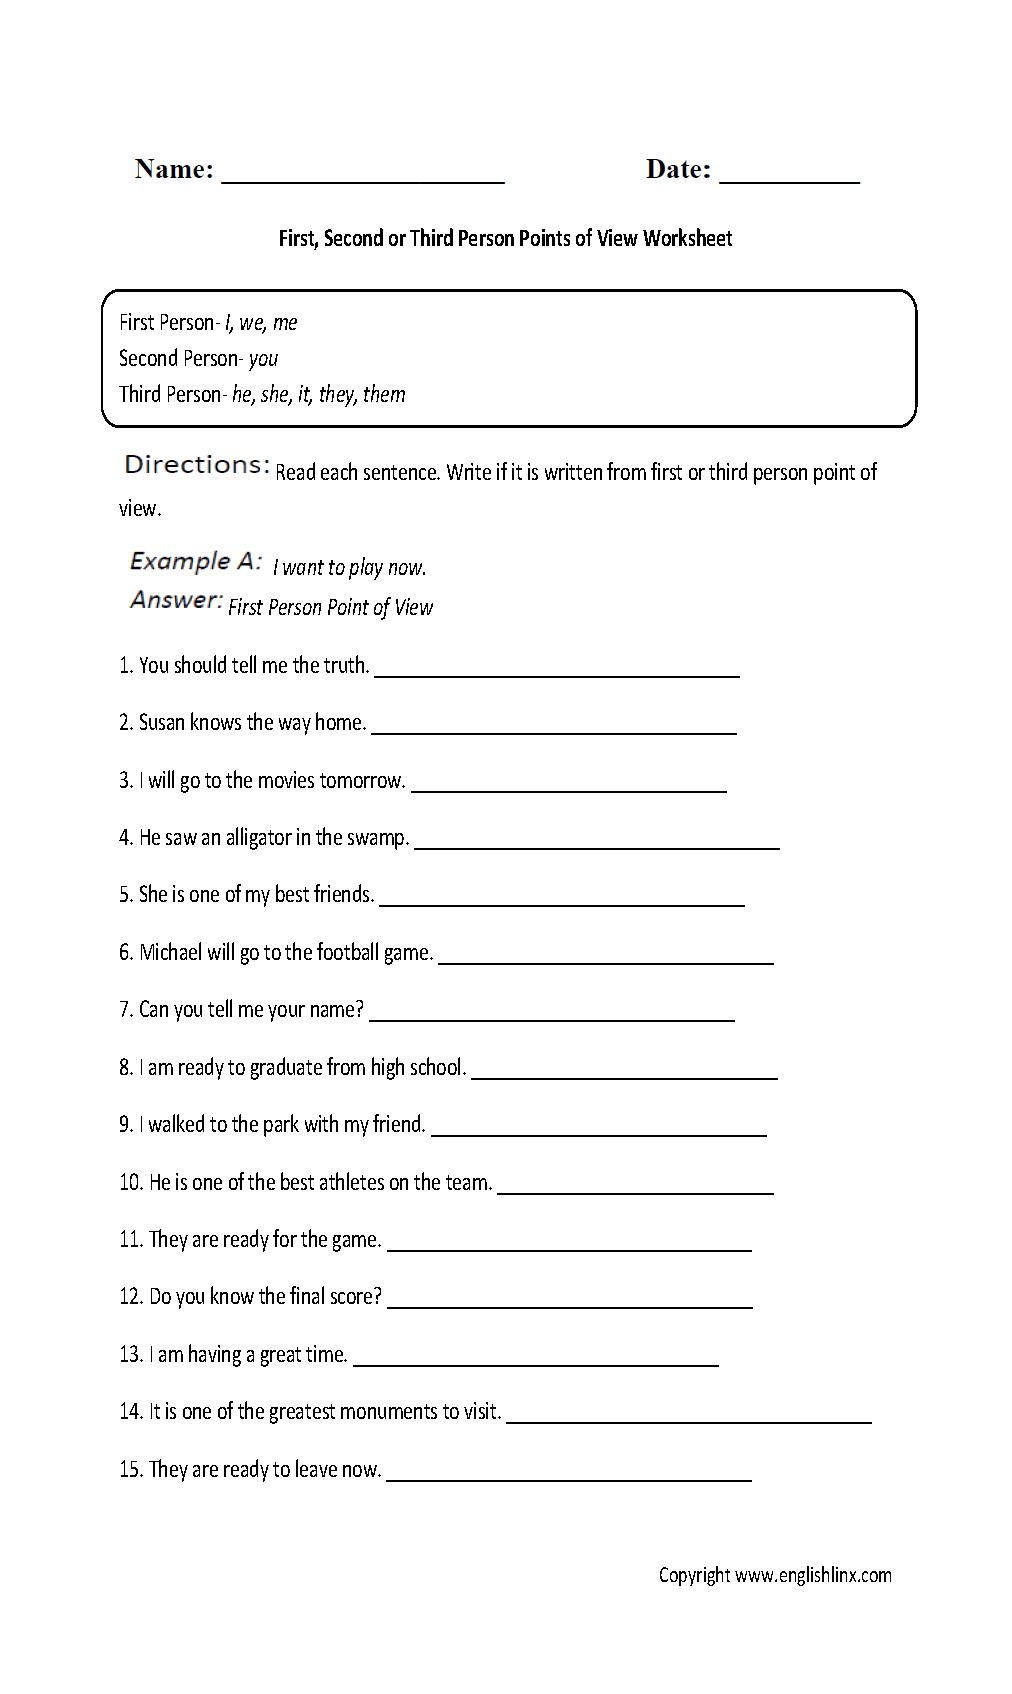 Weirdmailus  Marvelous Englishlinxcom  Point Of View Worksheets With Heavenly Point Of View Worksheet With Appealing Math Worksheet With Answers Also Check Worksheet In Addition Geometric Translations Worksheet And Free Equivalent Fraction Worksheets As Well As Free States And Capitals Worksheets Additionally Integers Order Of Operations Worksheet From Englishlinxcom With Weirdmailus  Heavenly Englishlinxcom  Point Of View Worksheets With Appealing Point Of View Worksheet And Marvelous Math Worksheet With Answers Also Check Worksheet In Addition Geometric Translations Worksheet From Englishlinxcom